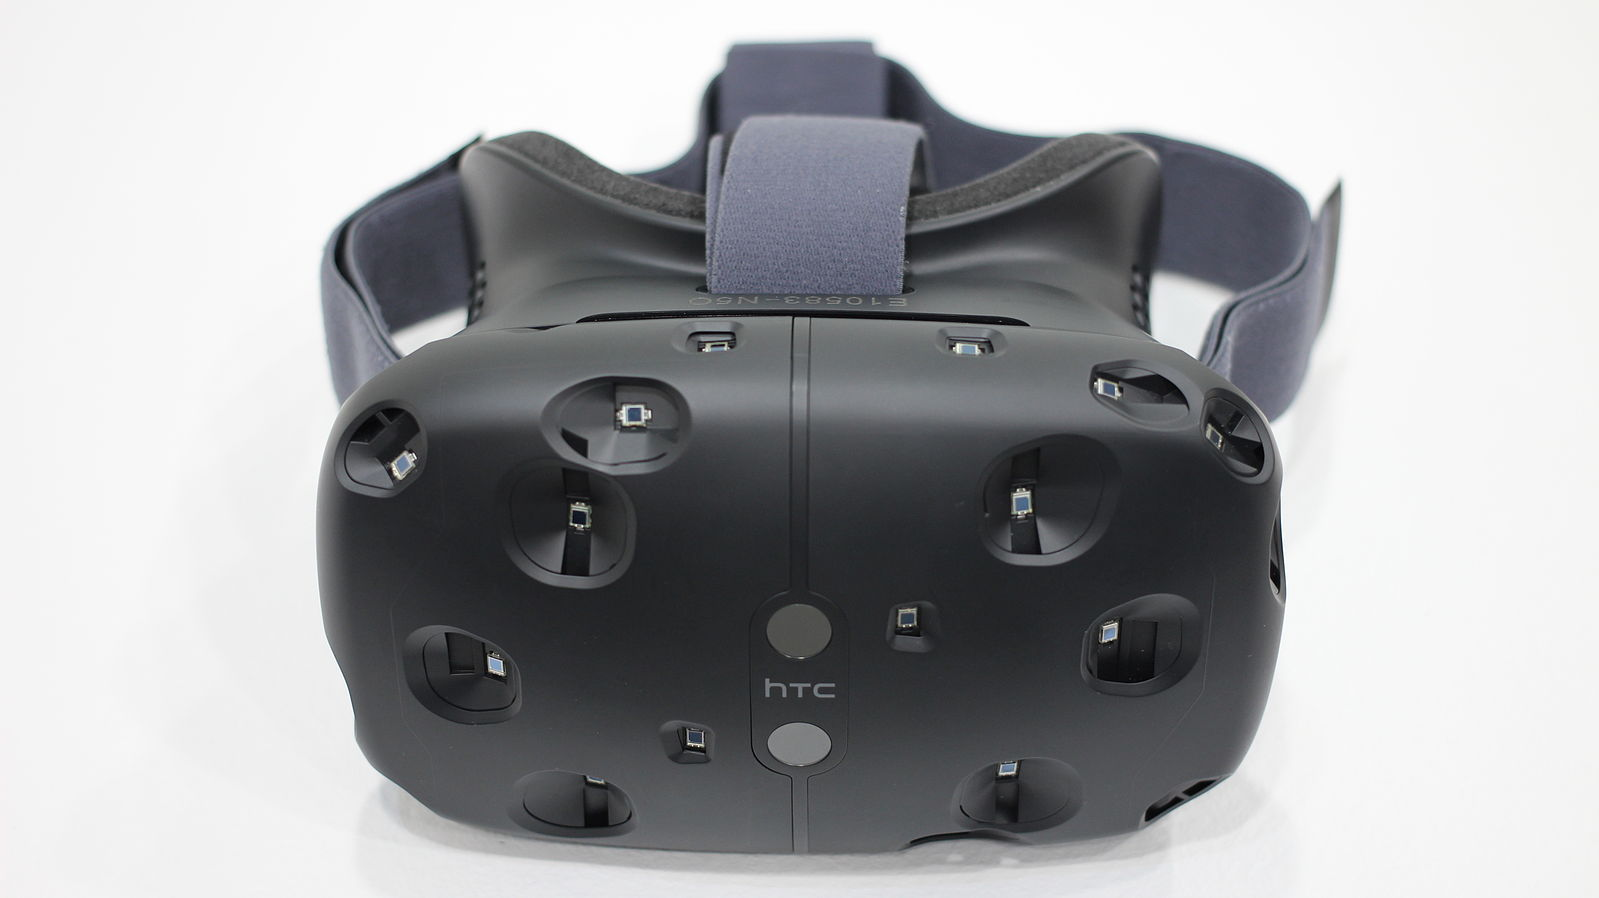 Difference Between Oculus Rift and HTC Vive